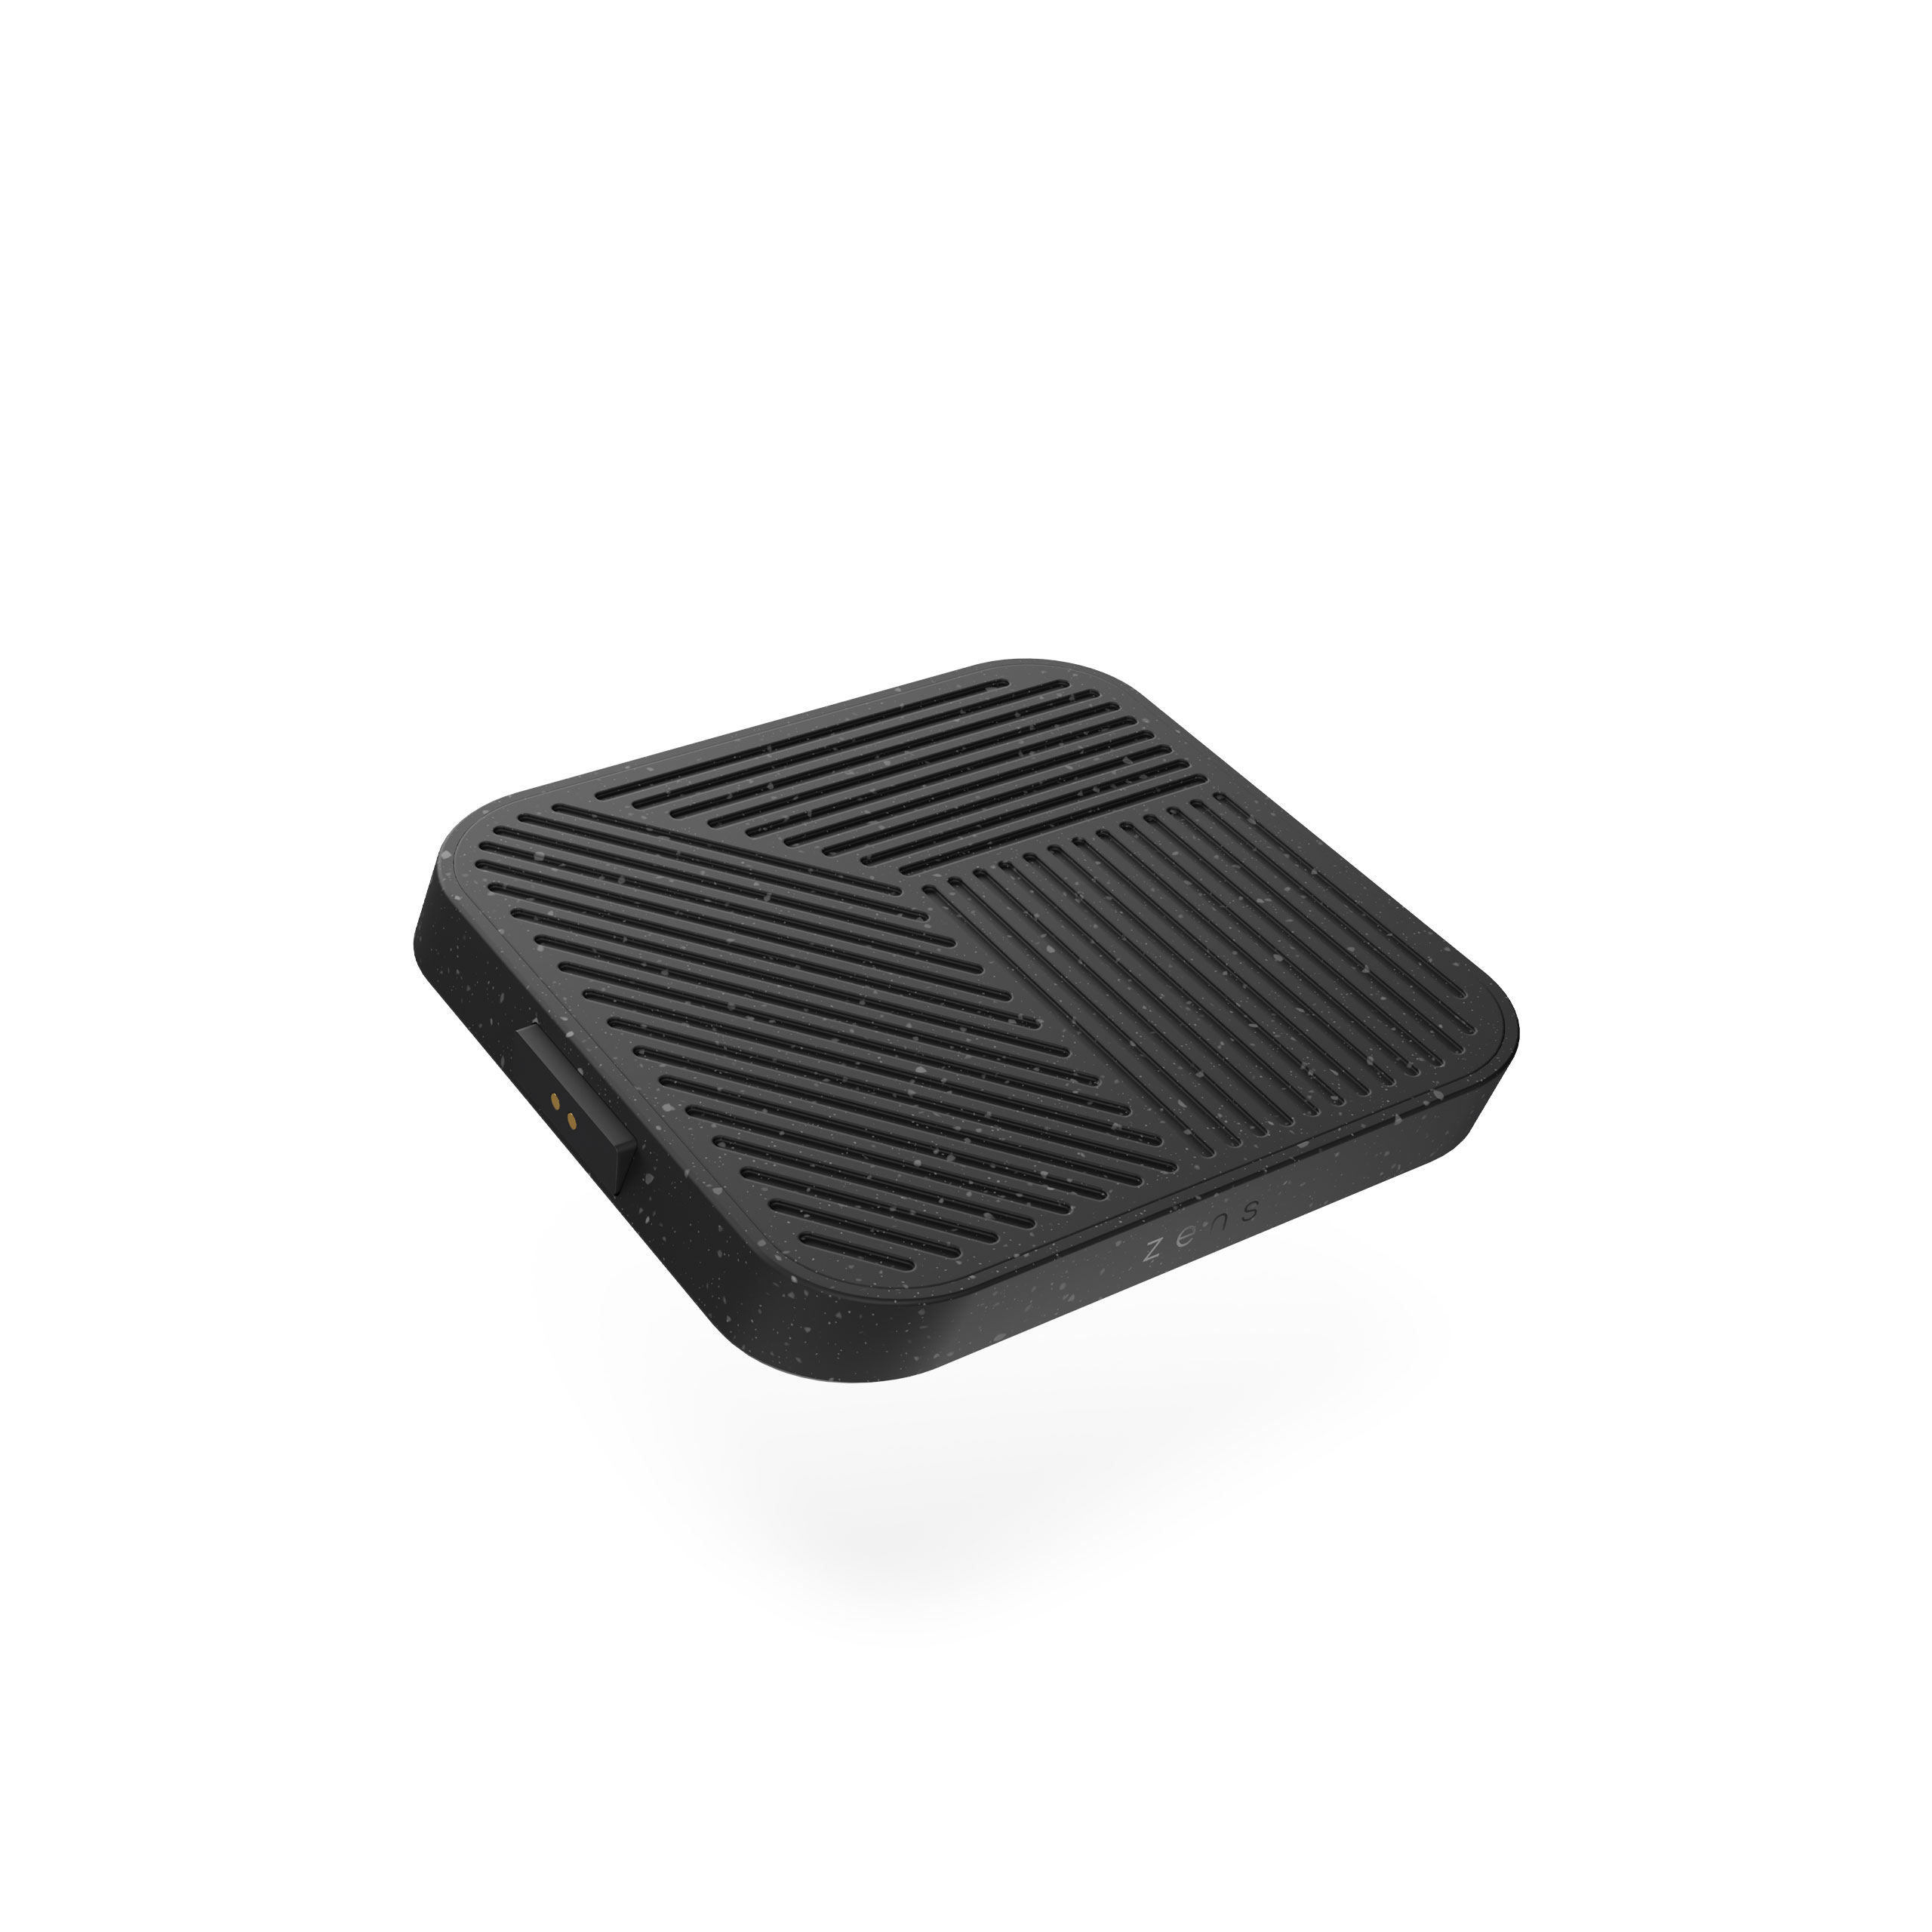 ZEMSC01P Zens Modular Single Wireless Charger Main Station Front Side View